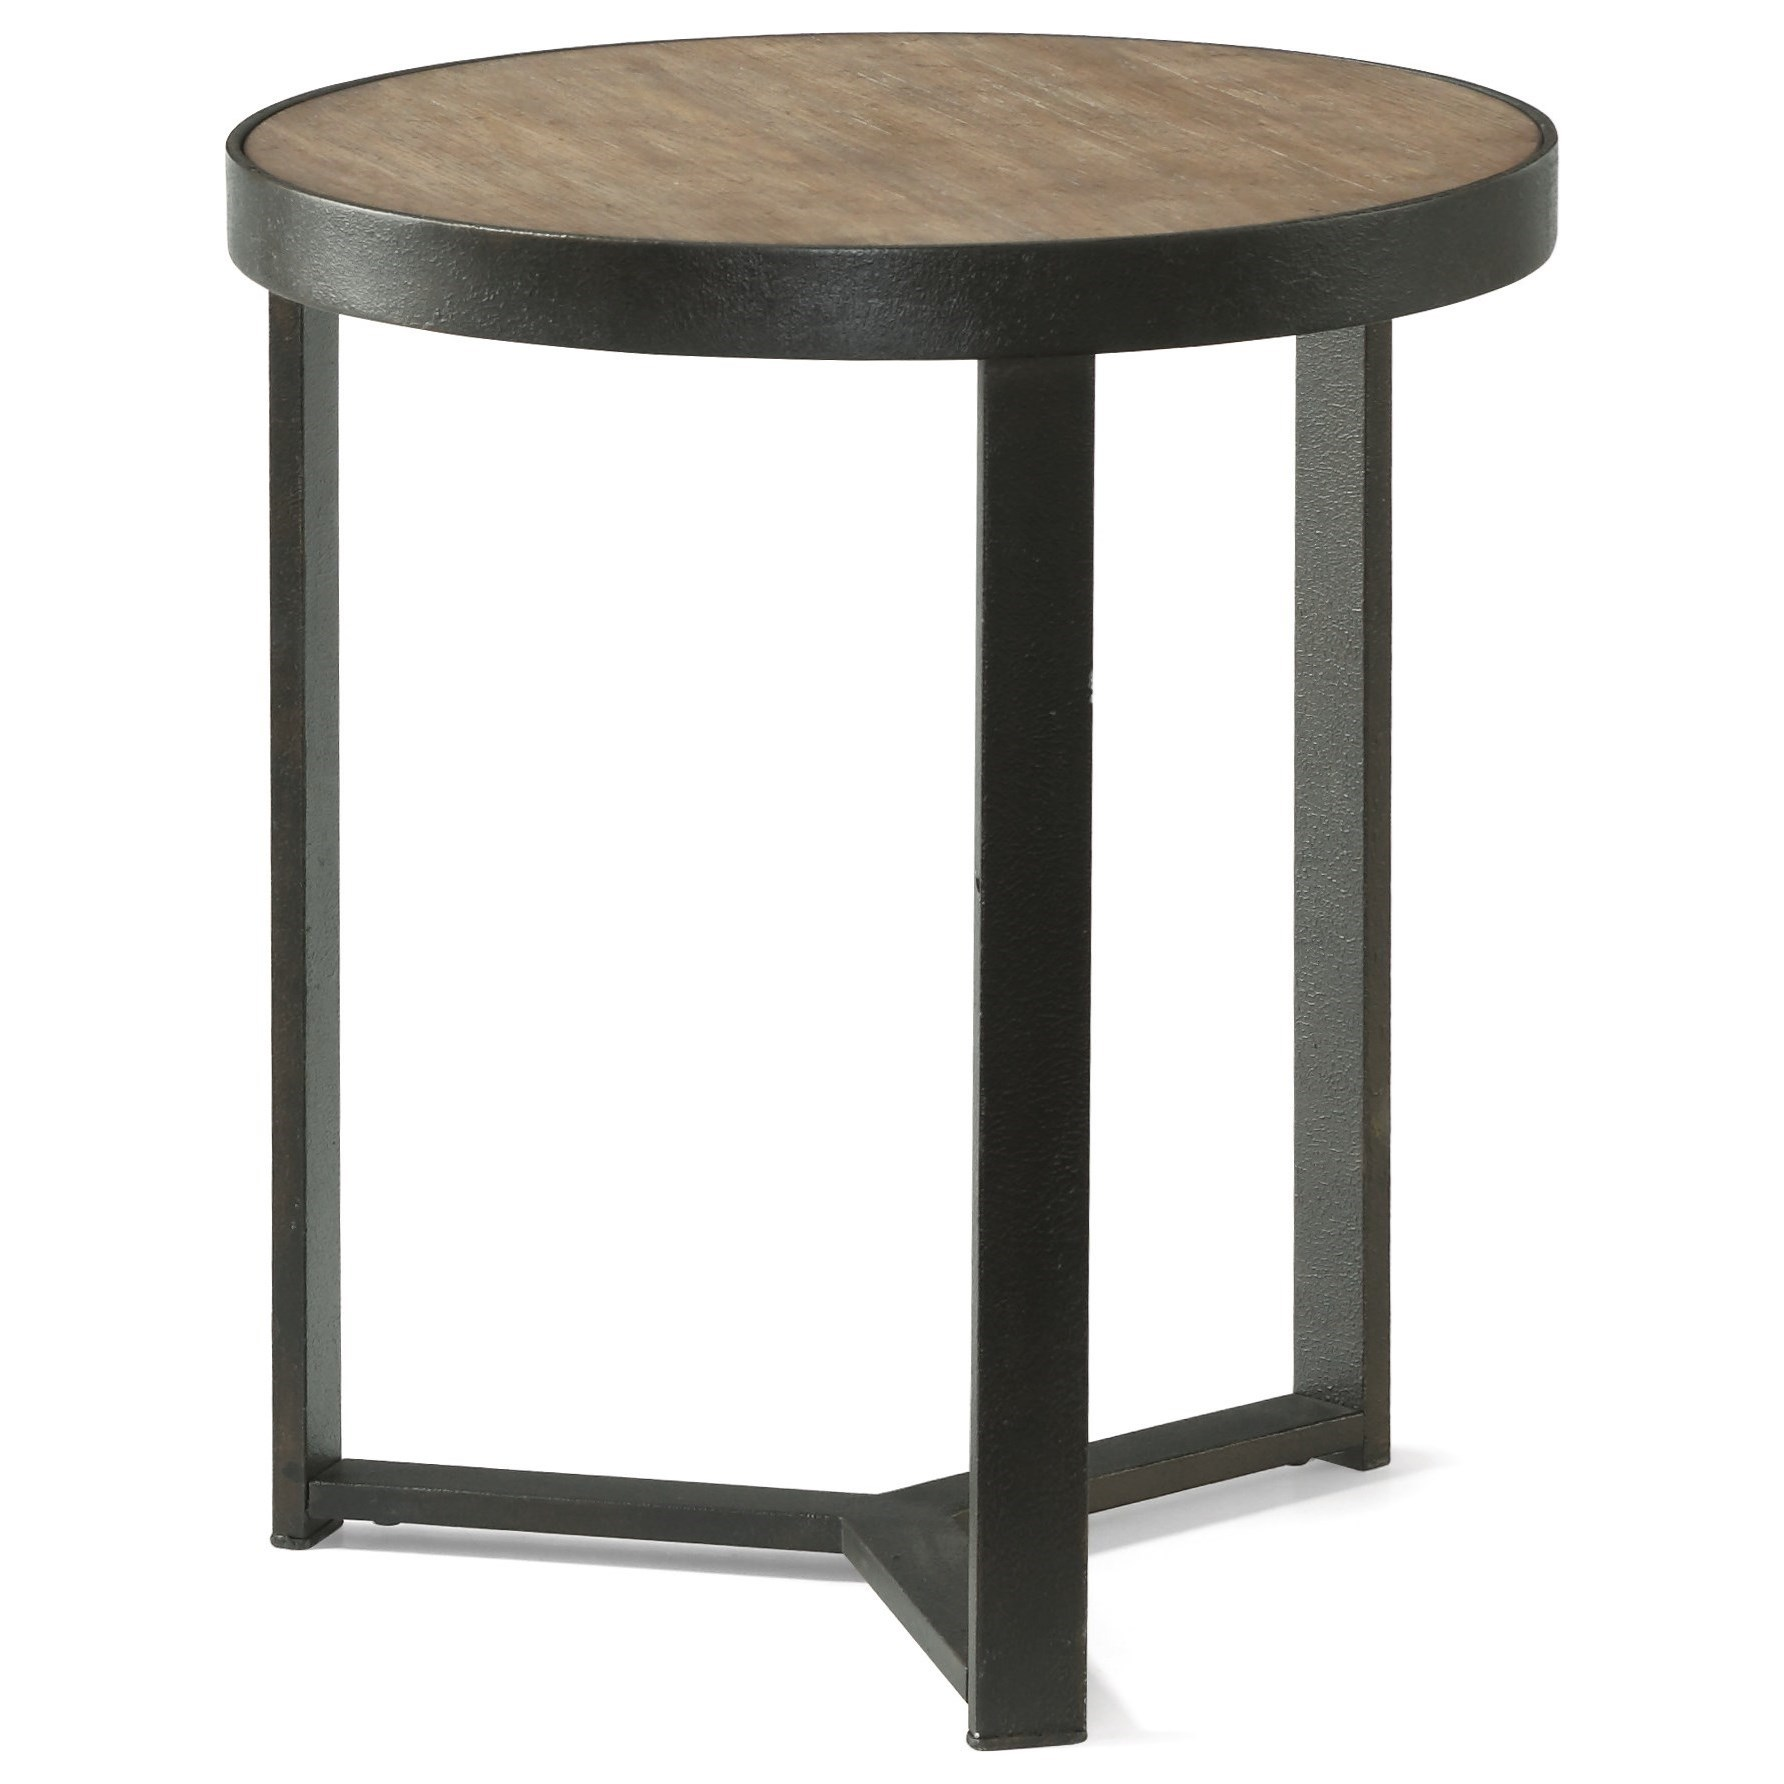 Carmen Short Bunching Table by Flexsteel Wynwood Collection at Northeast Factory Direct